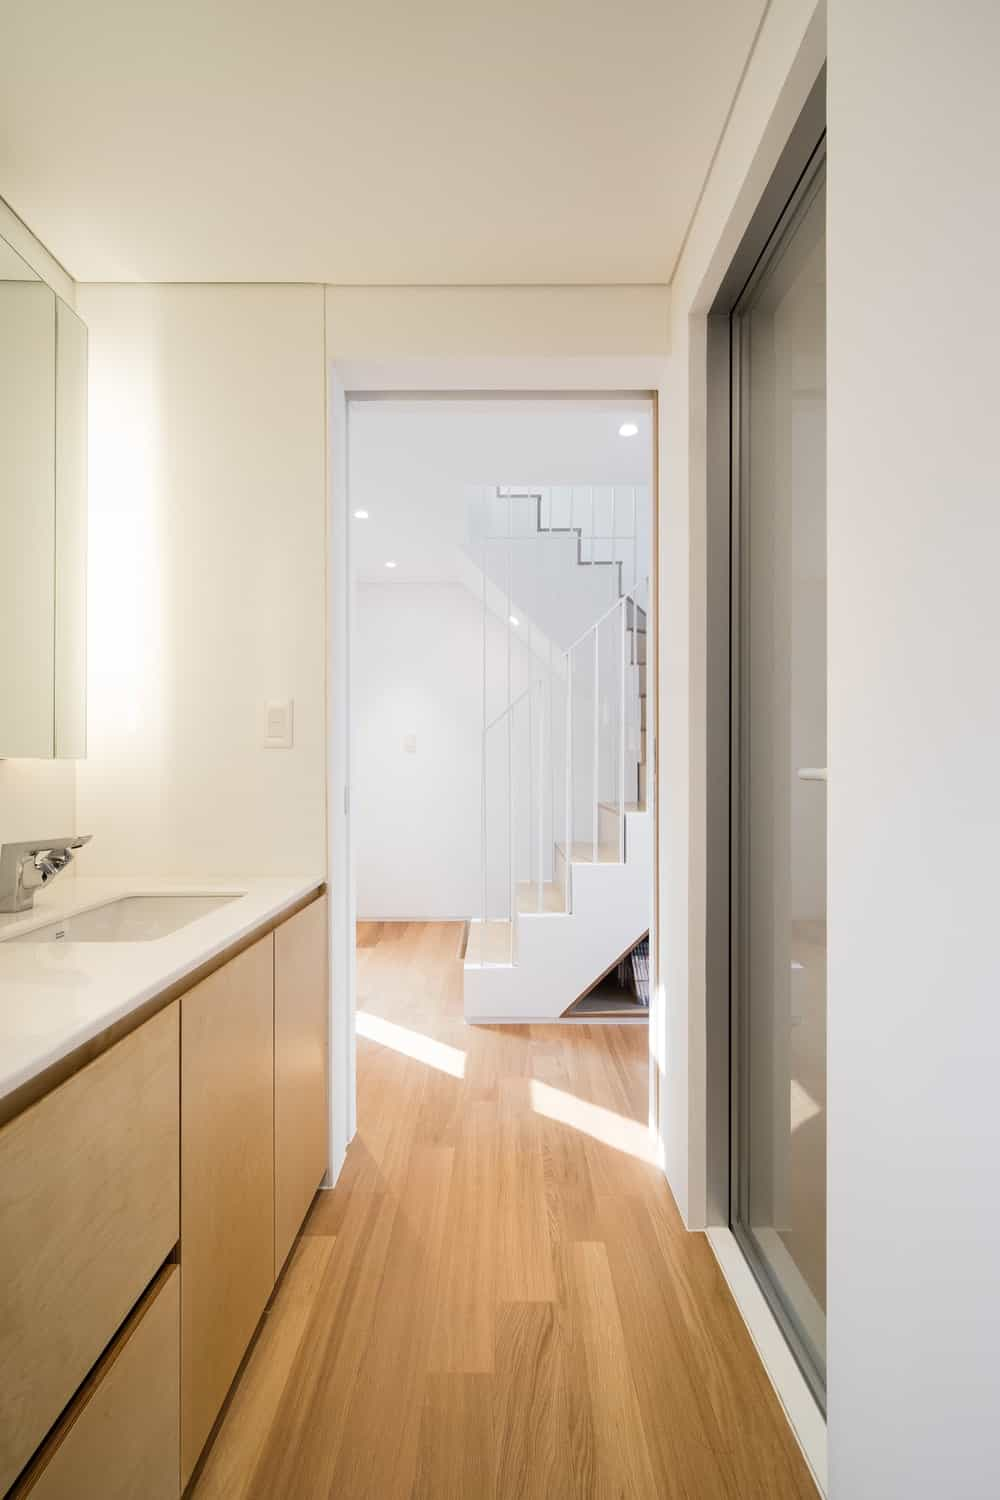 The bathroom is by the staircase with a wooden cabinetry to its vanity across from the glass door of the shower area.